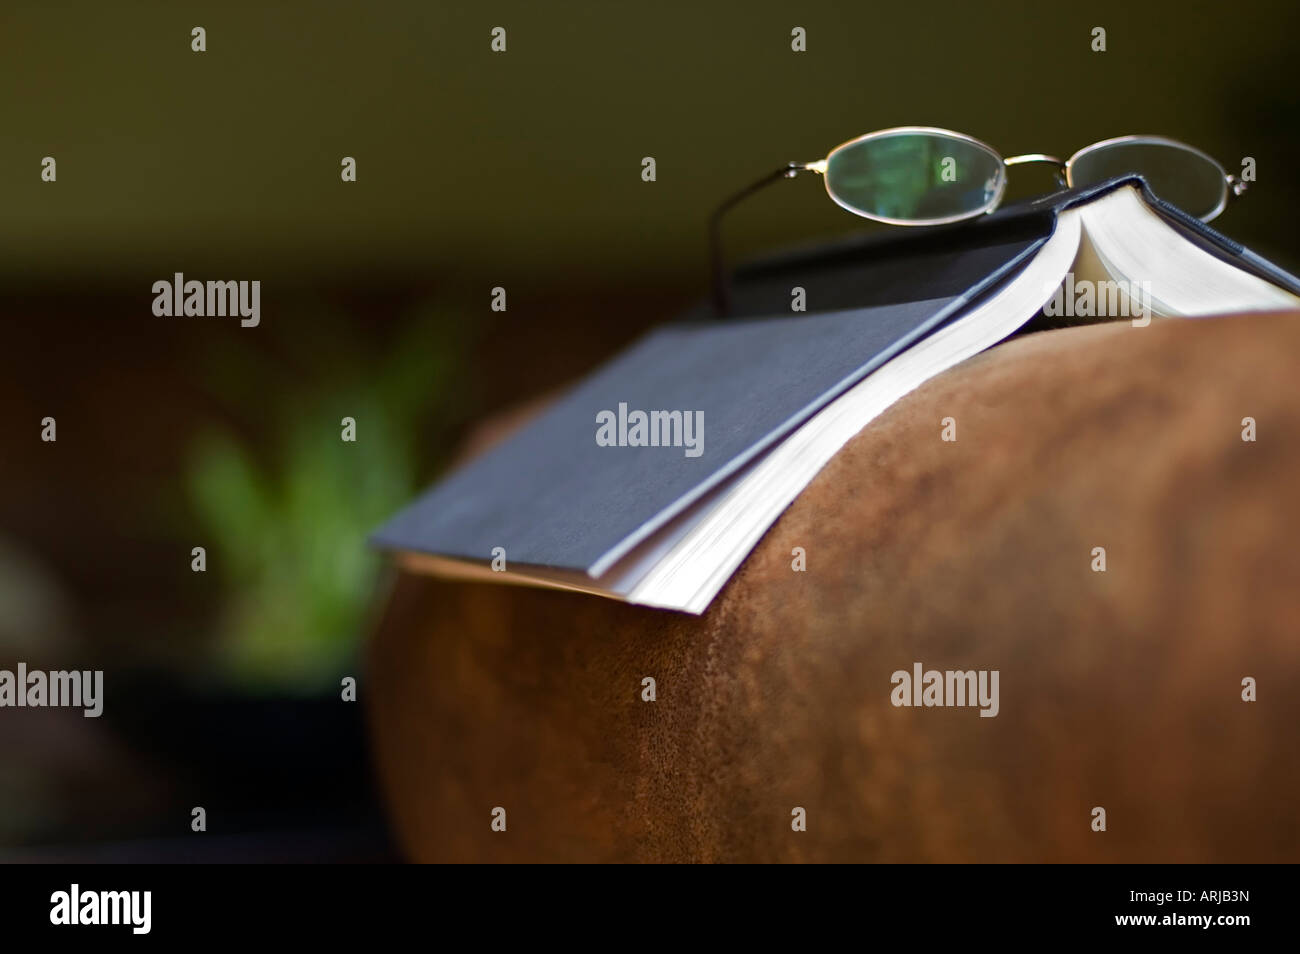 Page On The Left Stock Photos Images Alamy Laverda 1000 Motorcycle Engine Diagram Open Book And Reading Glasses Sofa Image